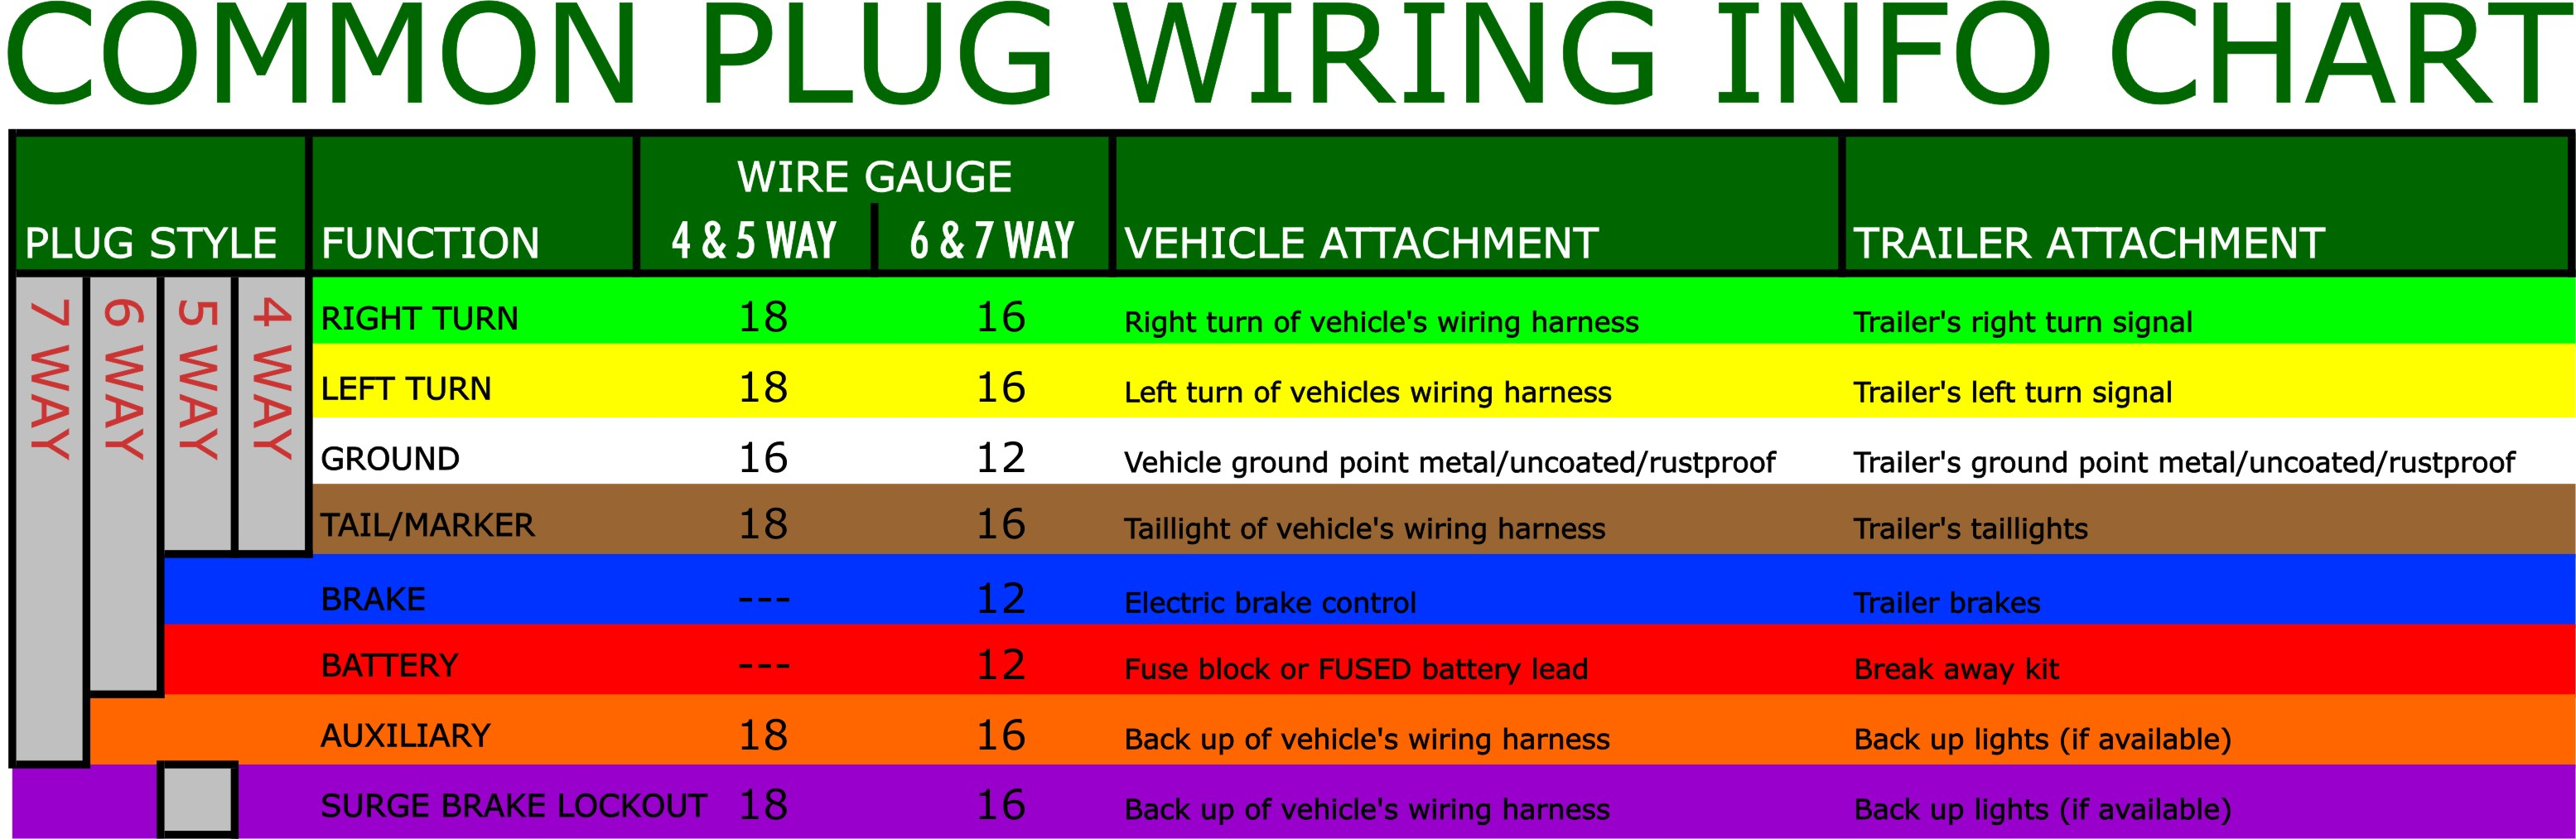 What Are The Most Common Trailer Plugs? - 7-Pin To 6-Pin Trailer Wiring Diagram